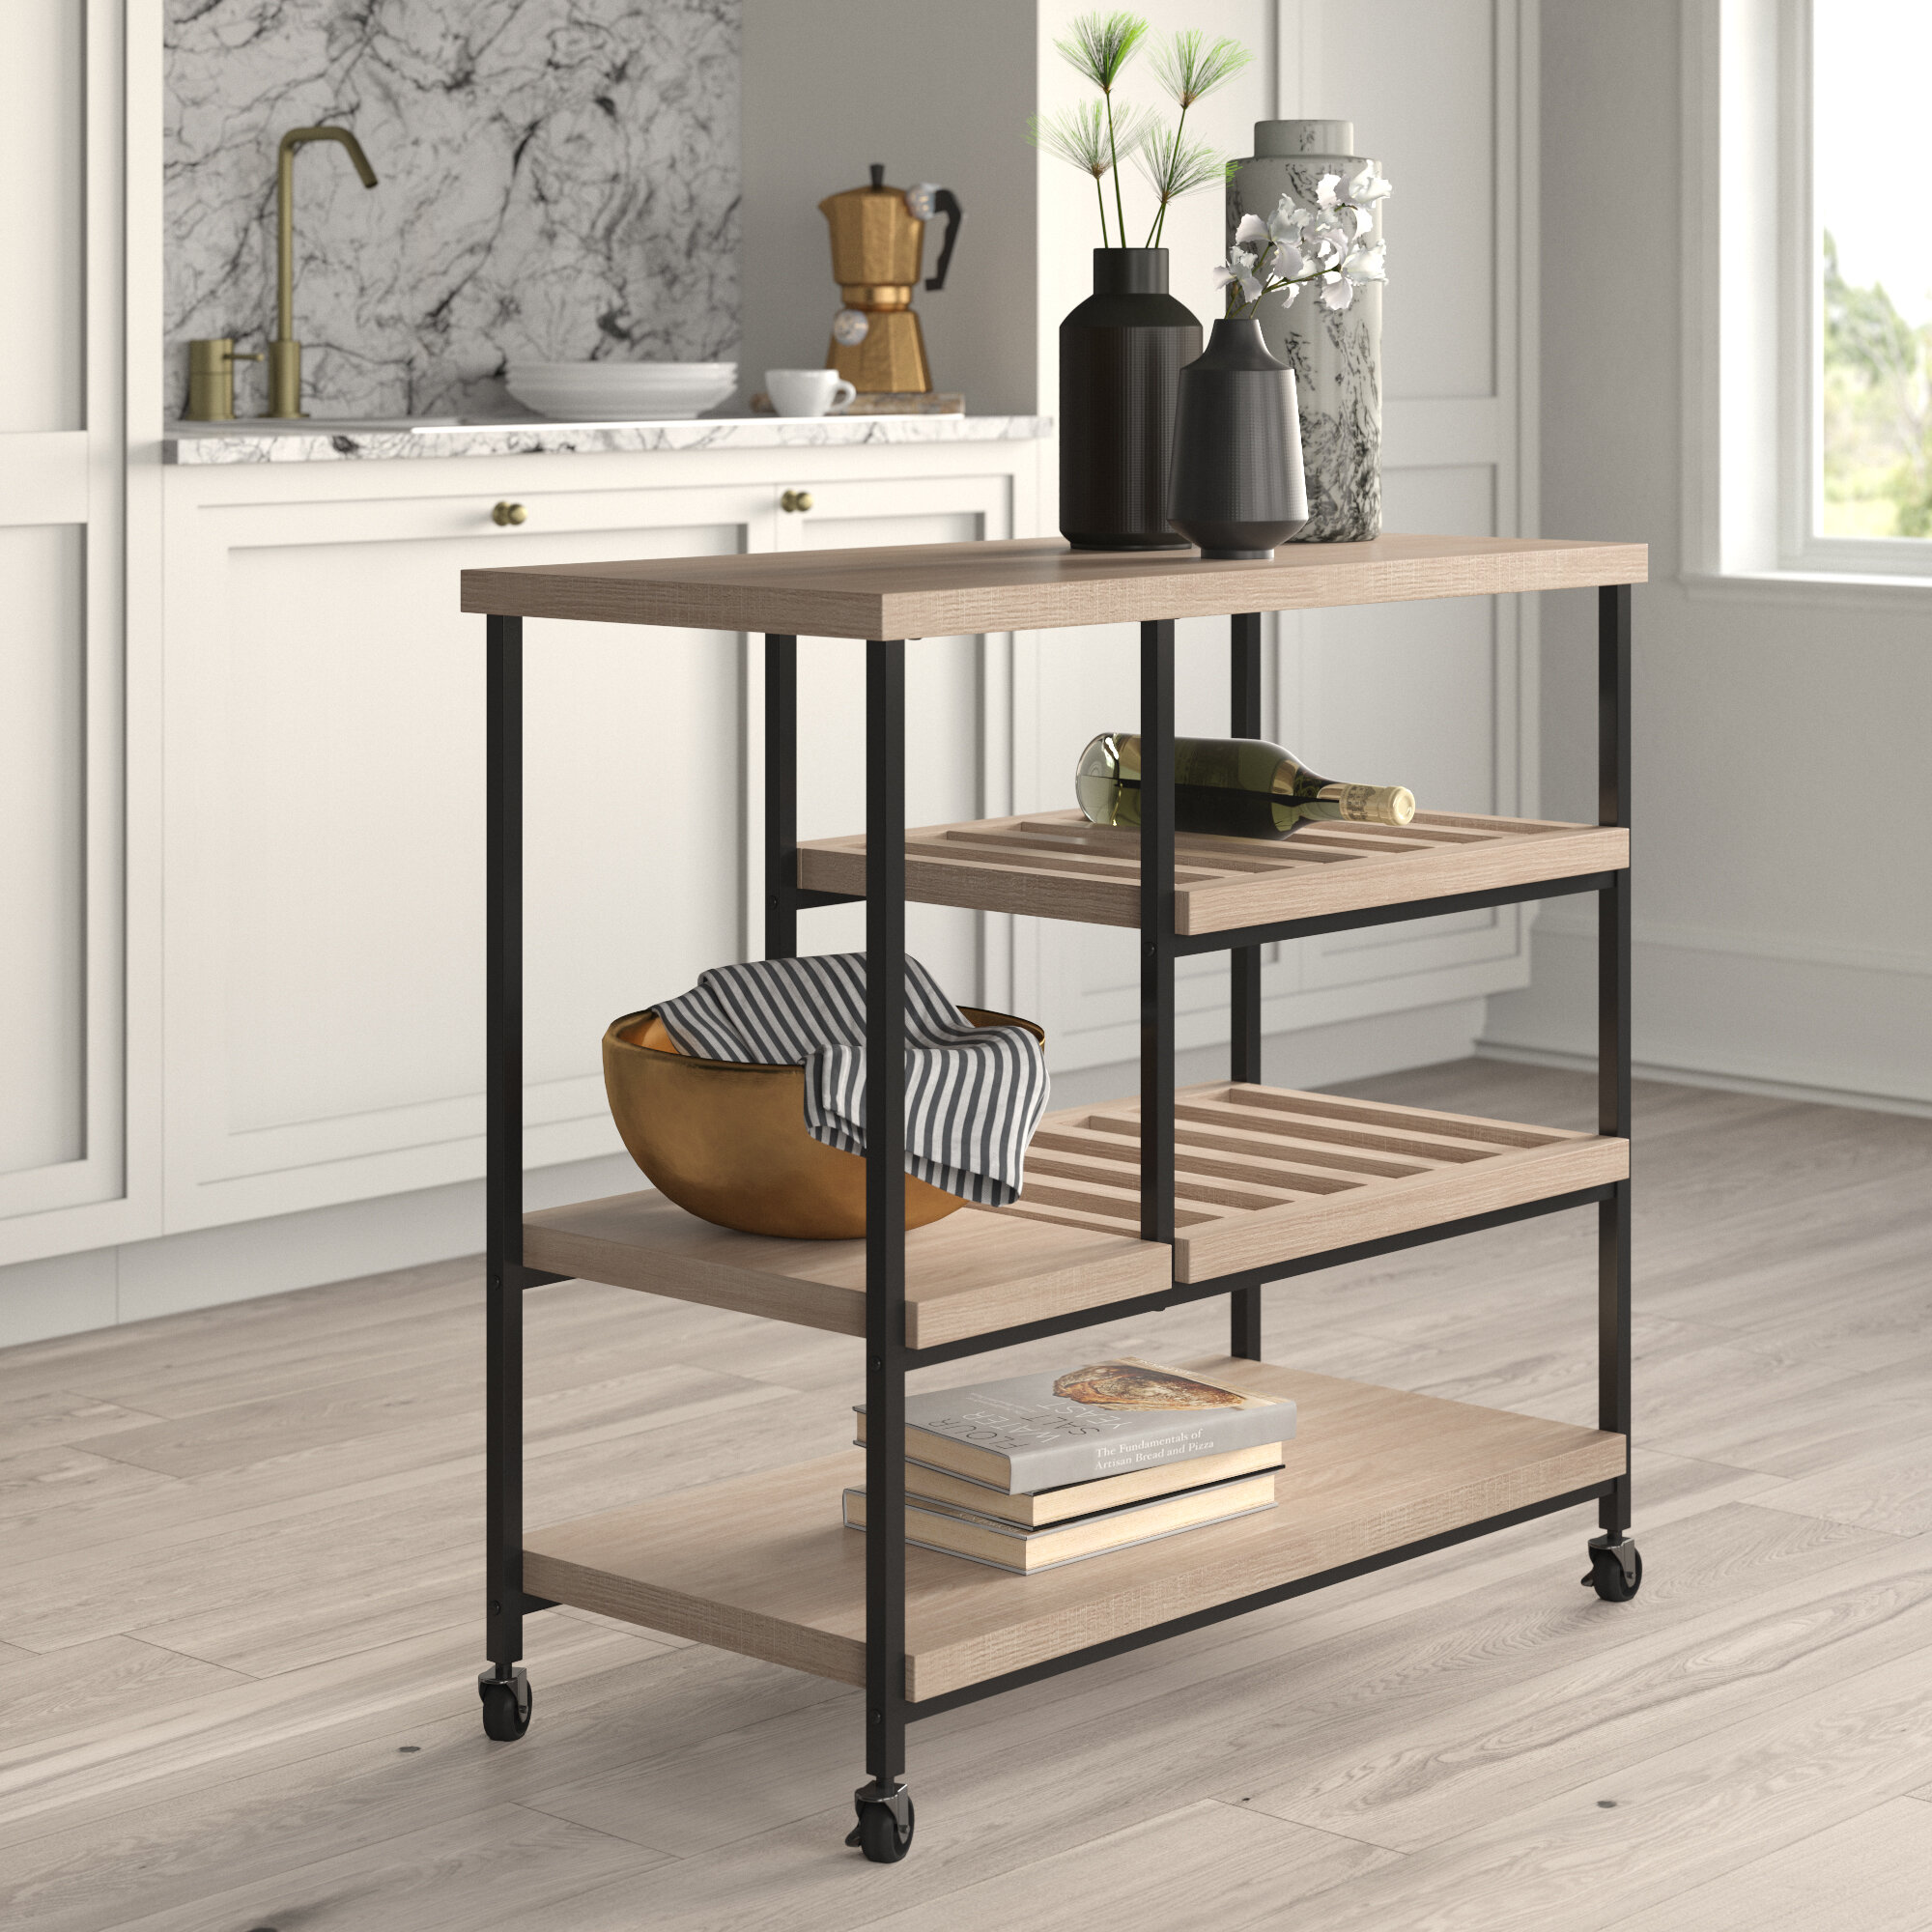 Landis Kitchen Cart With Wooden Top